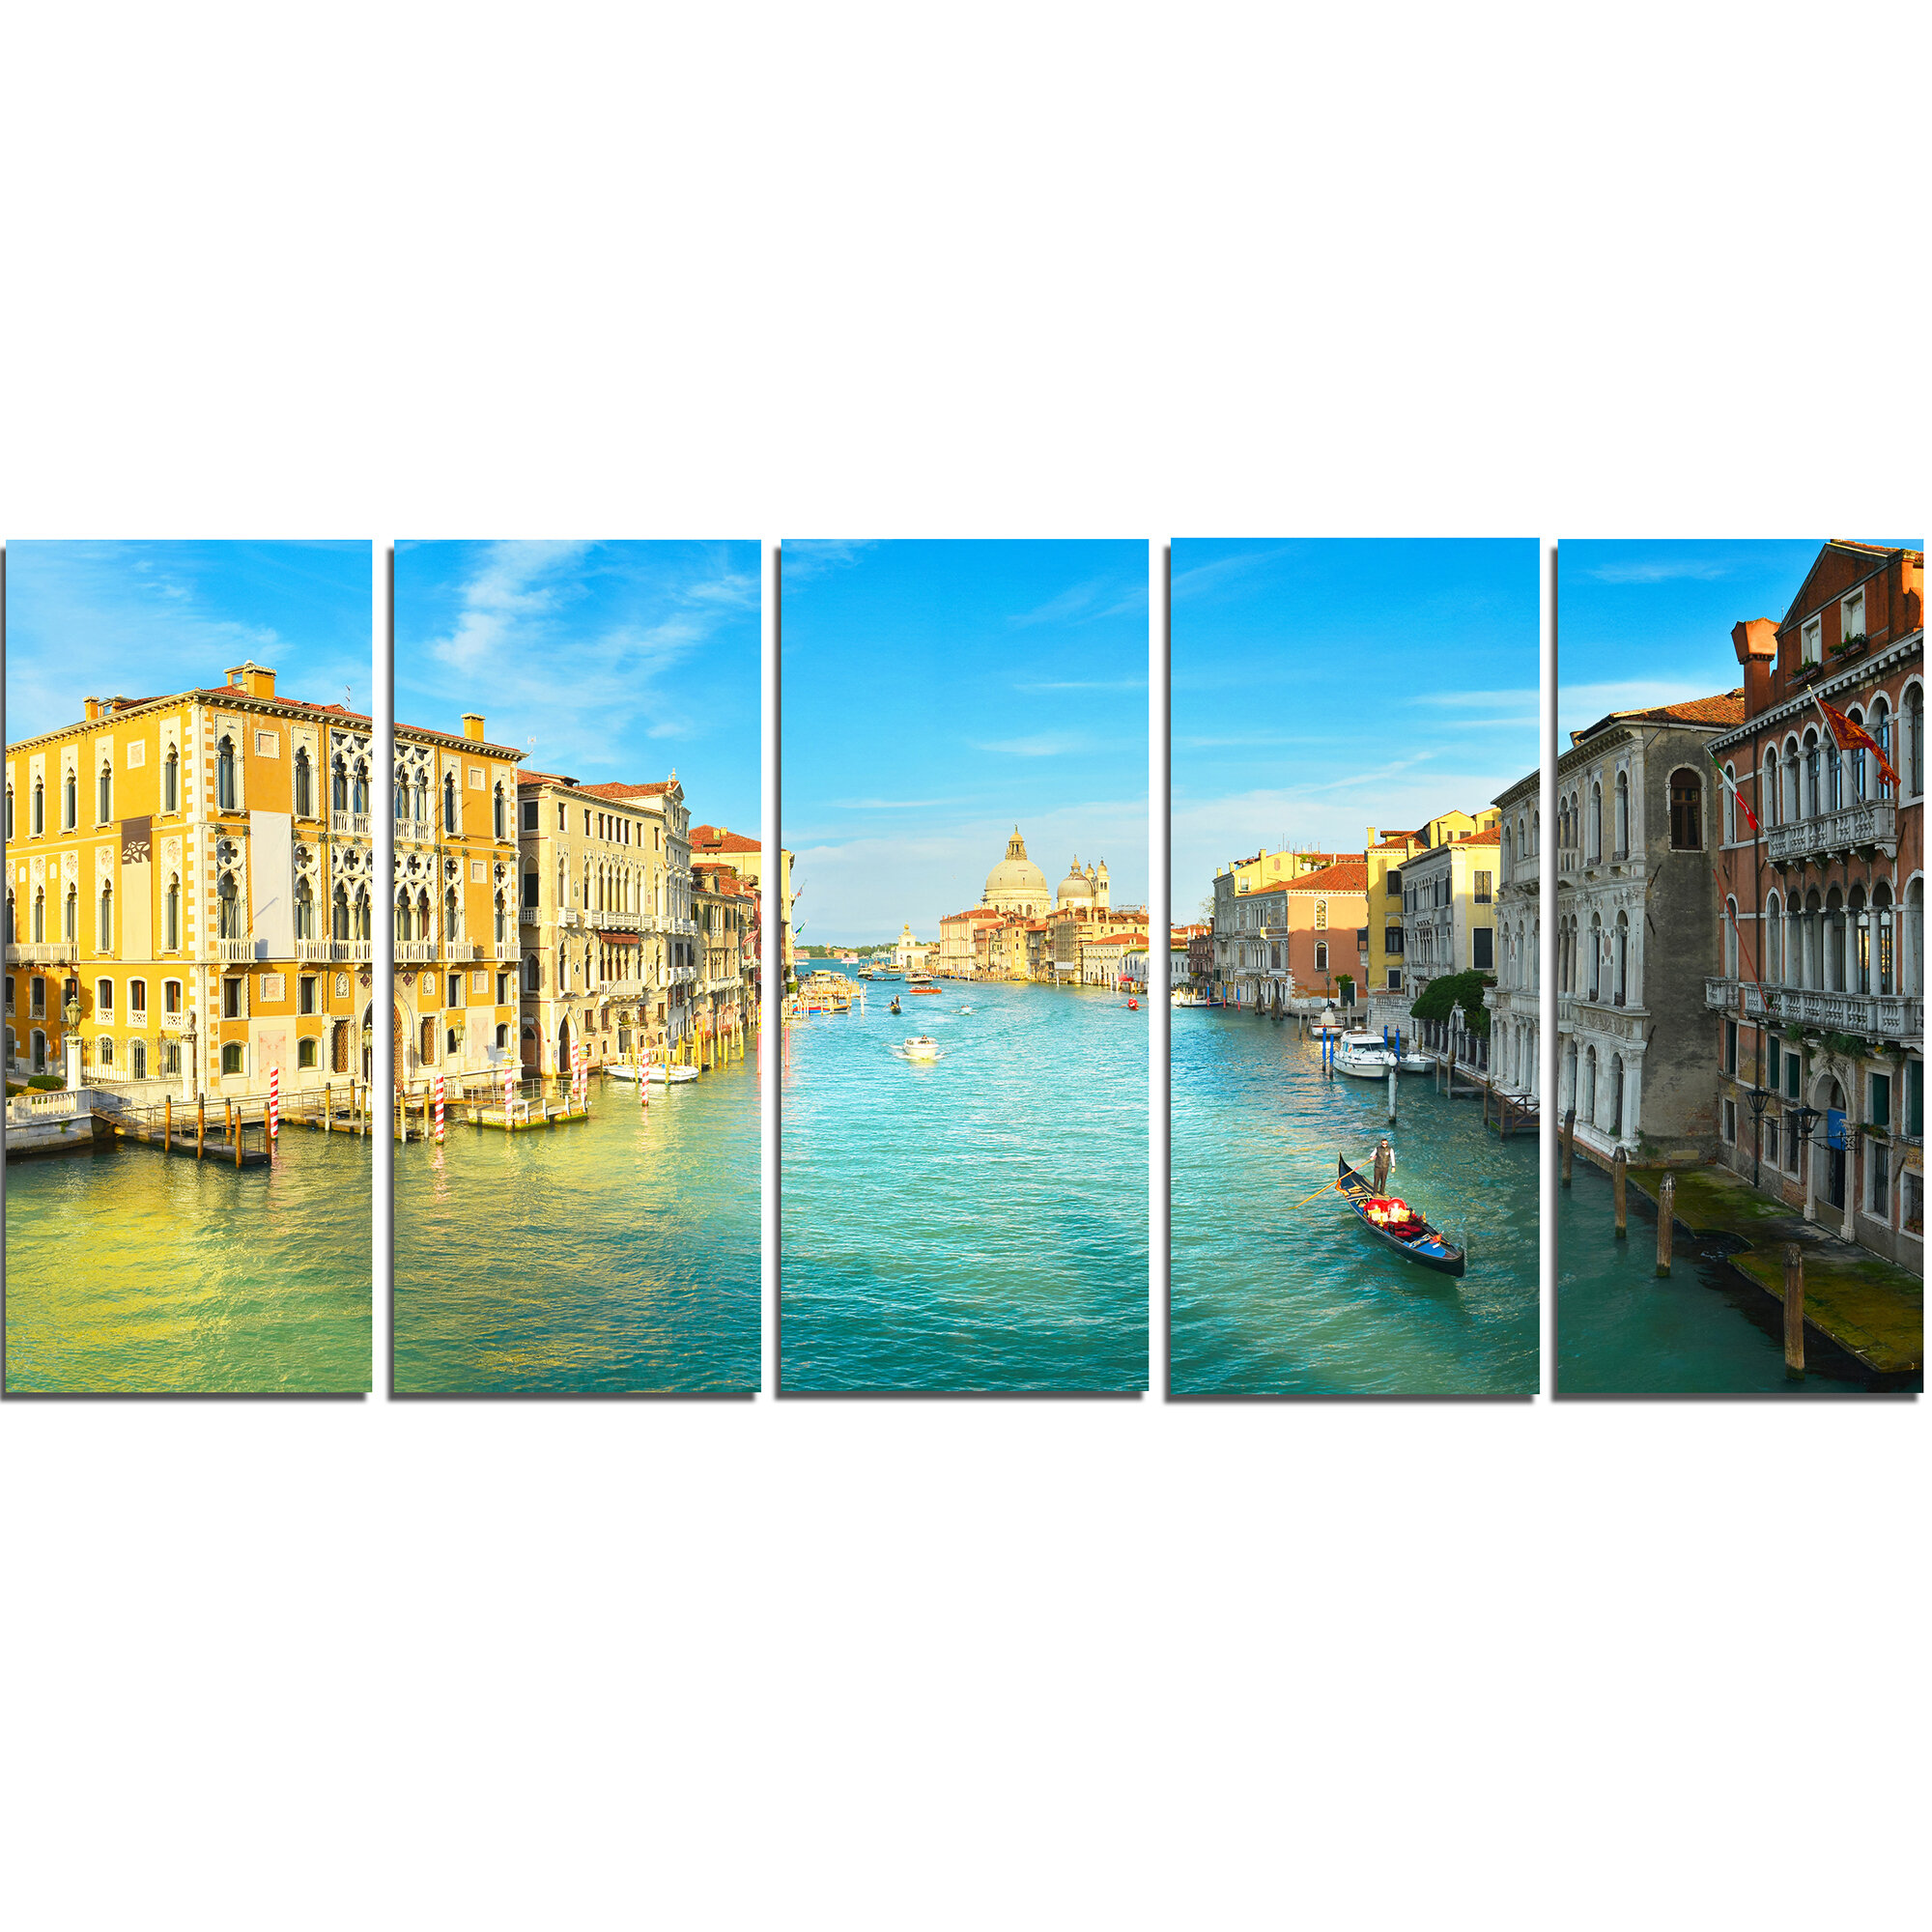 4068 Large Blue Venice Italy Canvas Wall Art Pictures Set XL 130cm